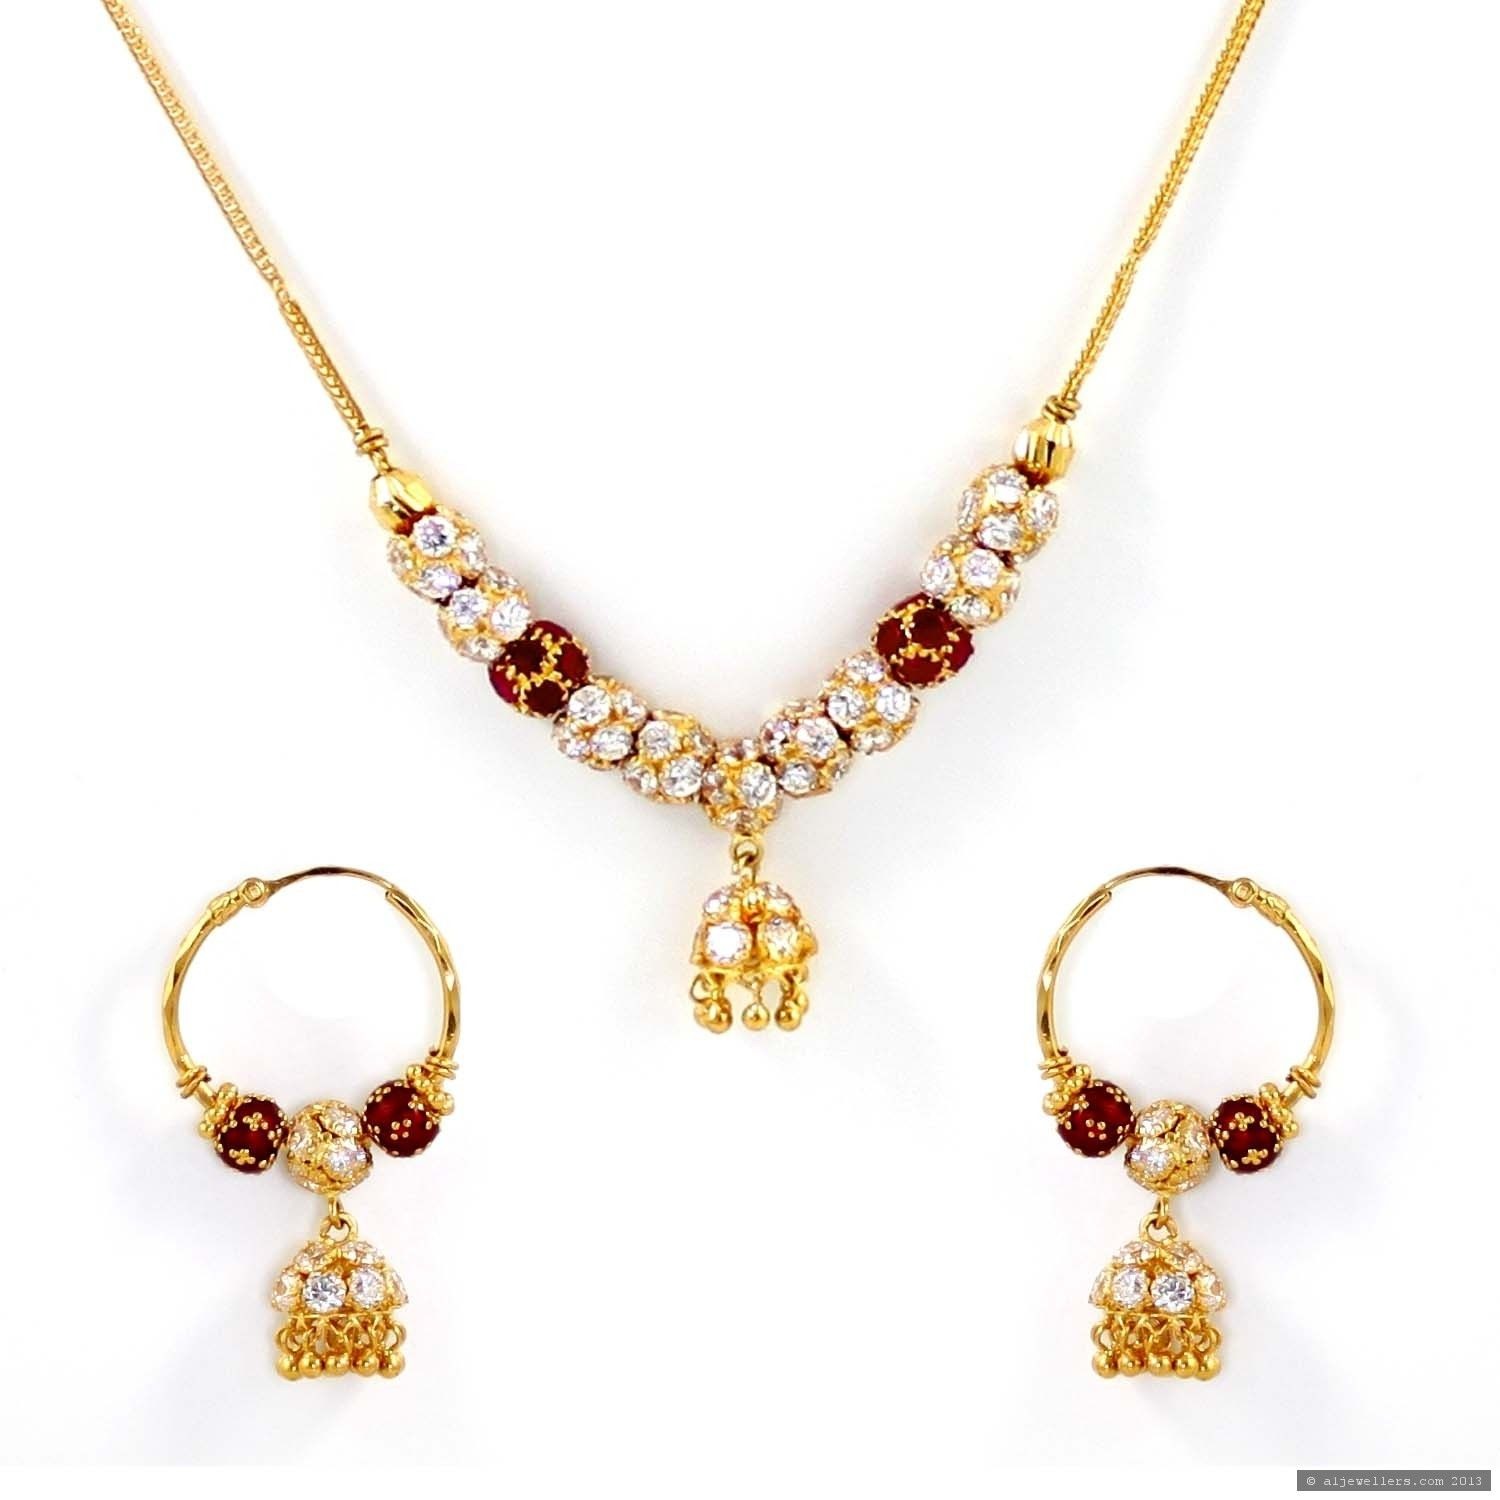 22ct Indian Gold Necklace Set: 22ct Indian Gold Necklace Set (1)